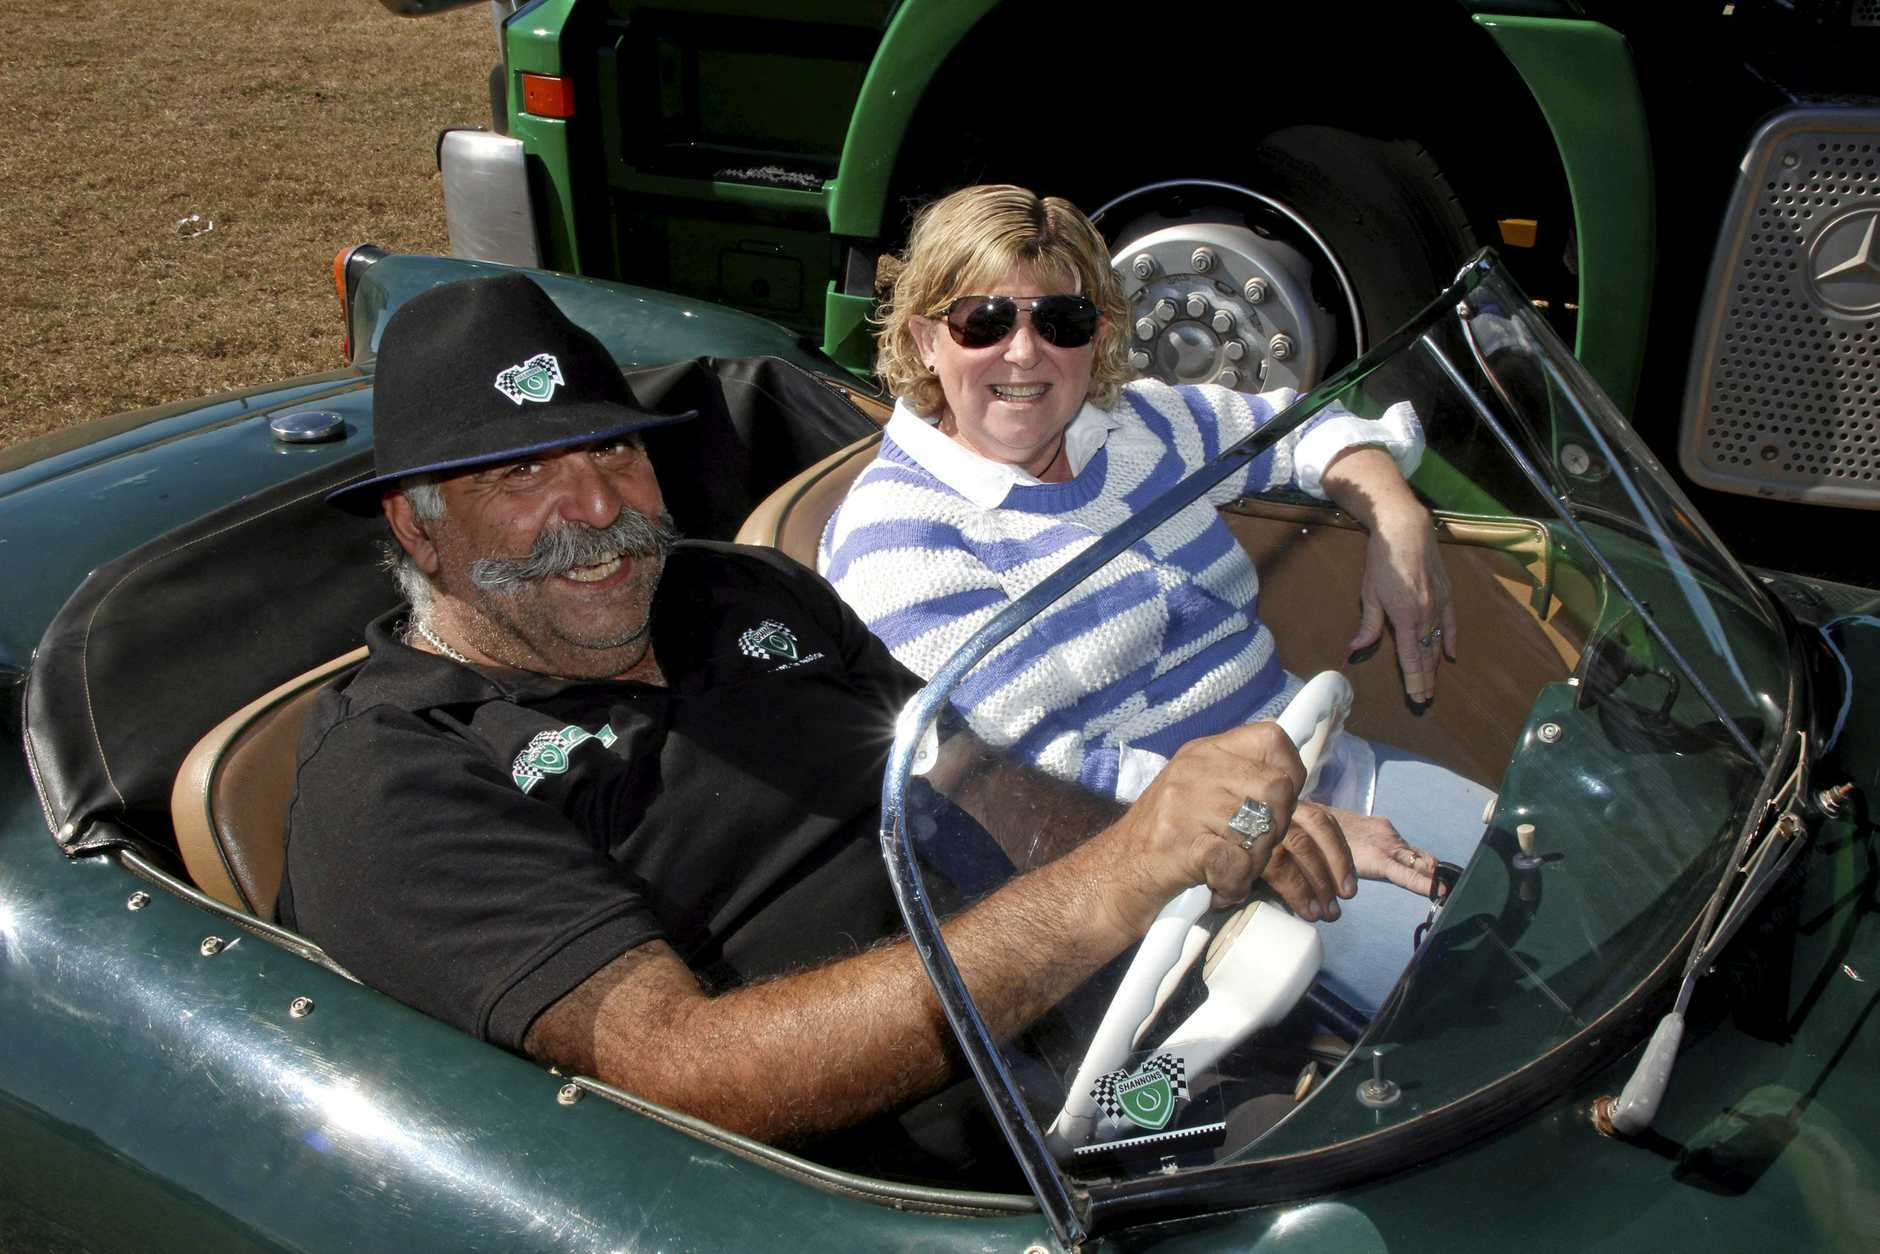 Nick Hassapas takes Carole Mansfield for a spin in his 1959 Goggomobil Dart at Chrome and Clutter at the Laidley Showgrounds, June 23, 2018.